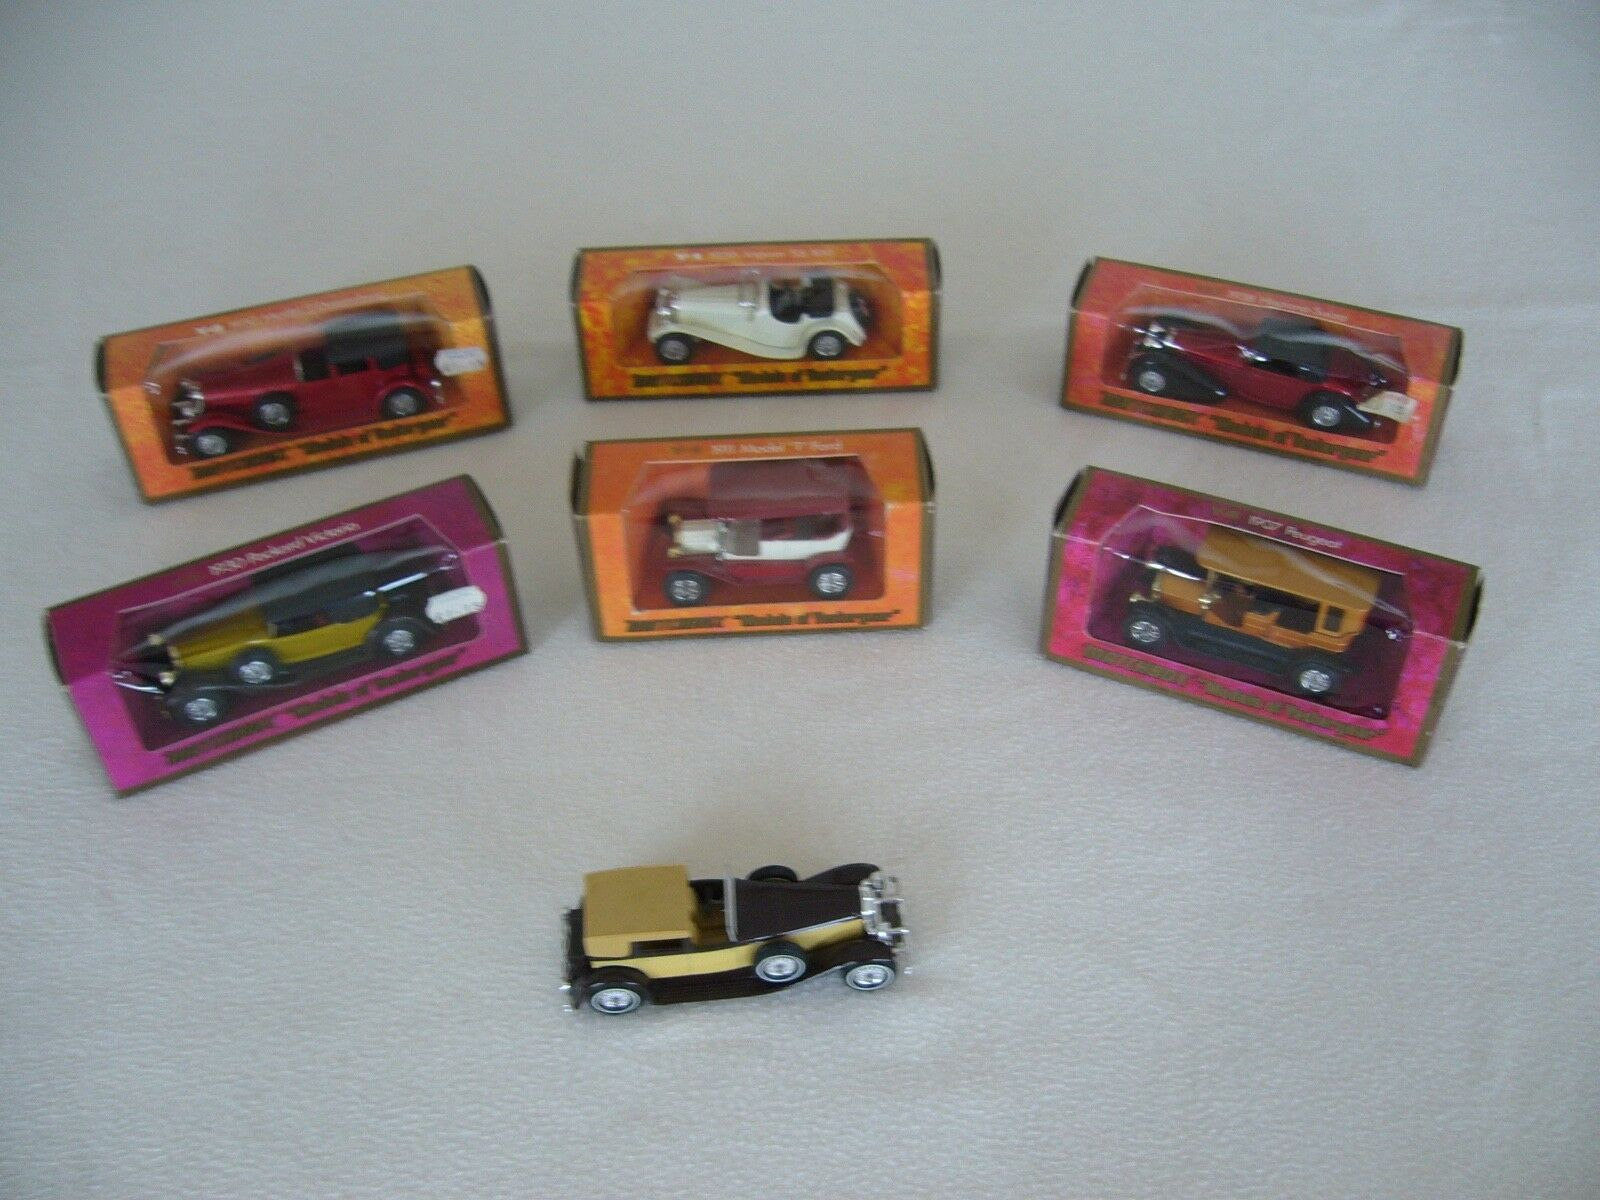 MATCHBOX MODELS OF YESTERYEAR. 6 BOXED CARS + 1 UNBOXED. ALL RARER MODELS. EEEE.